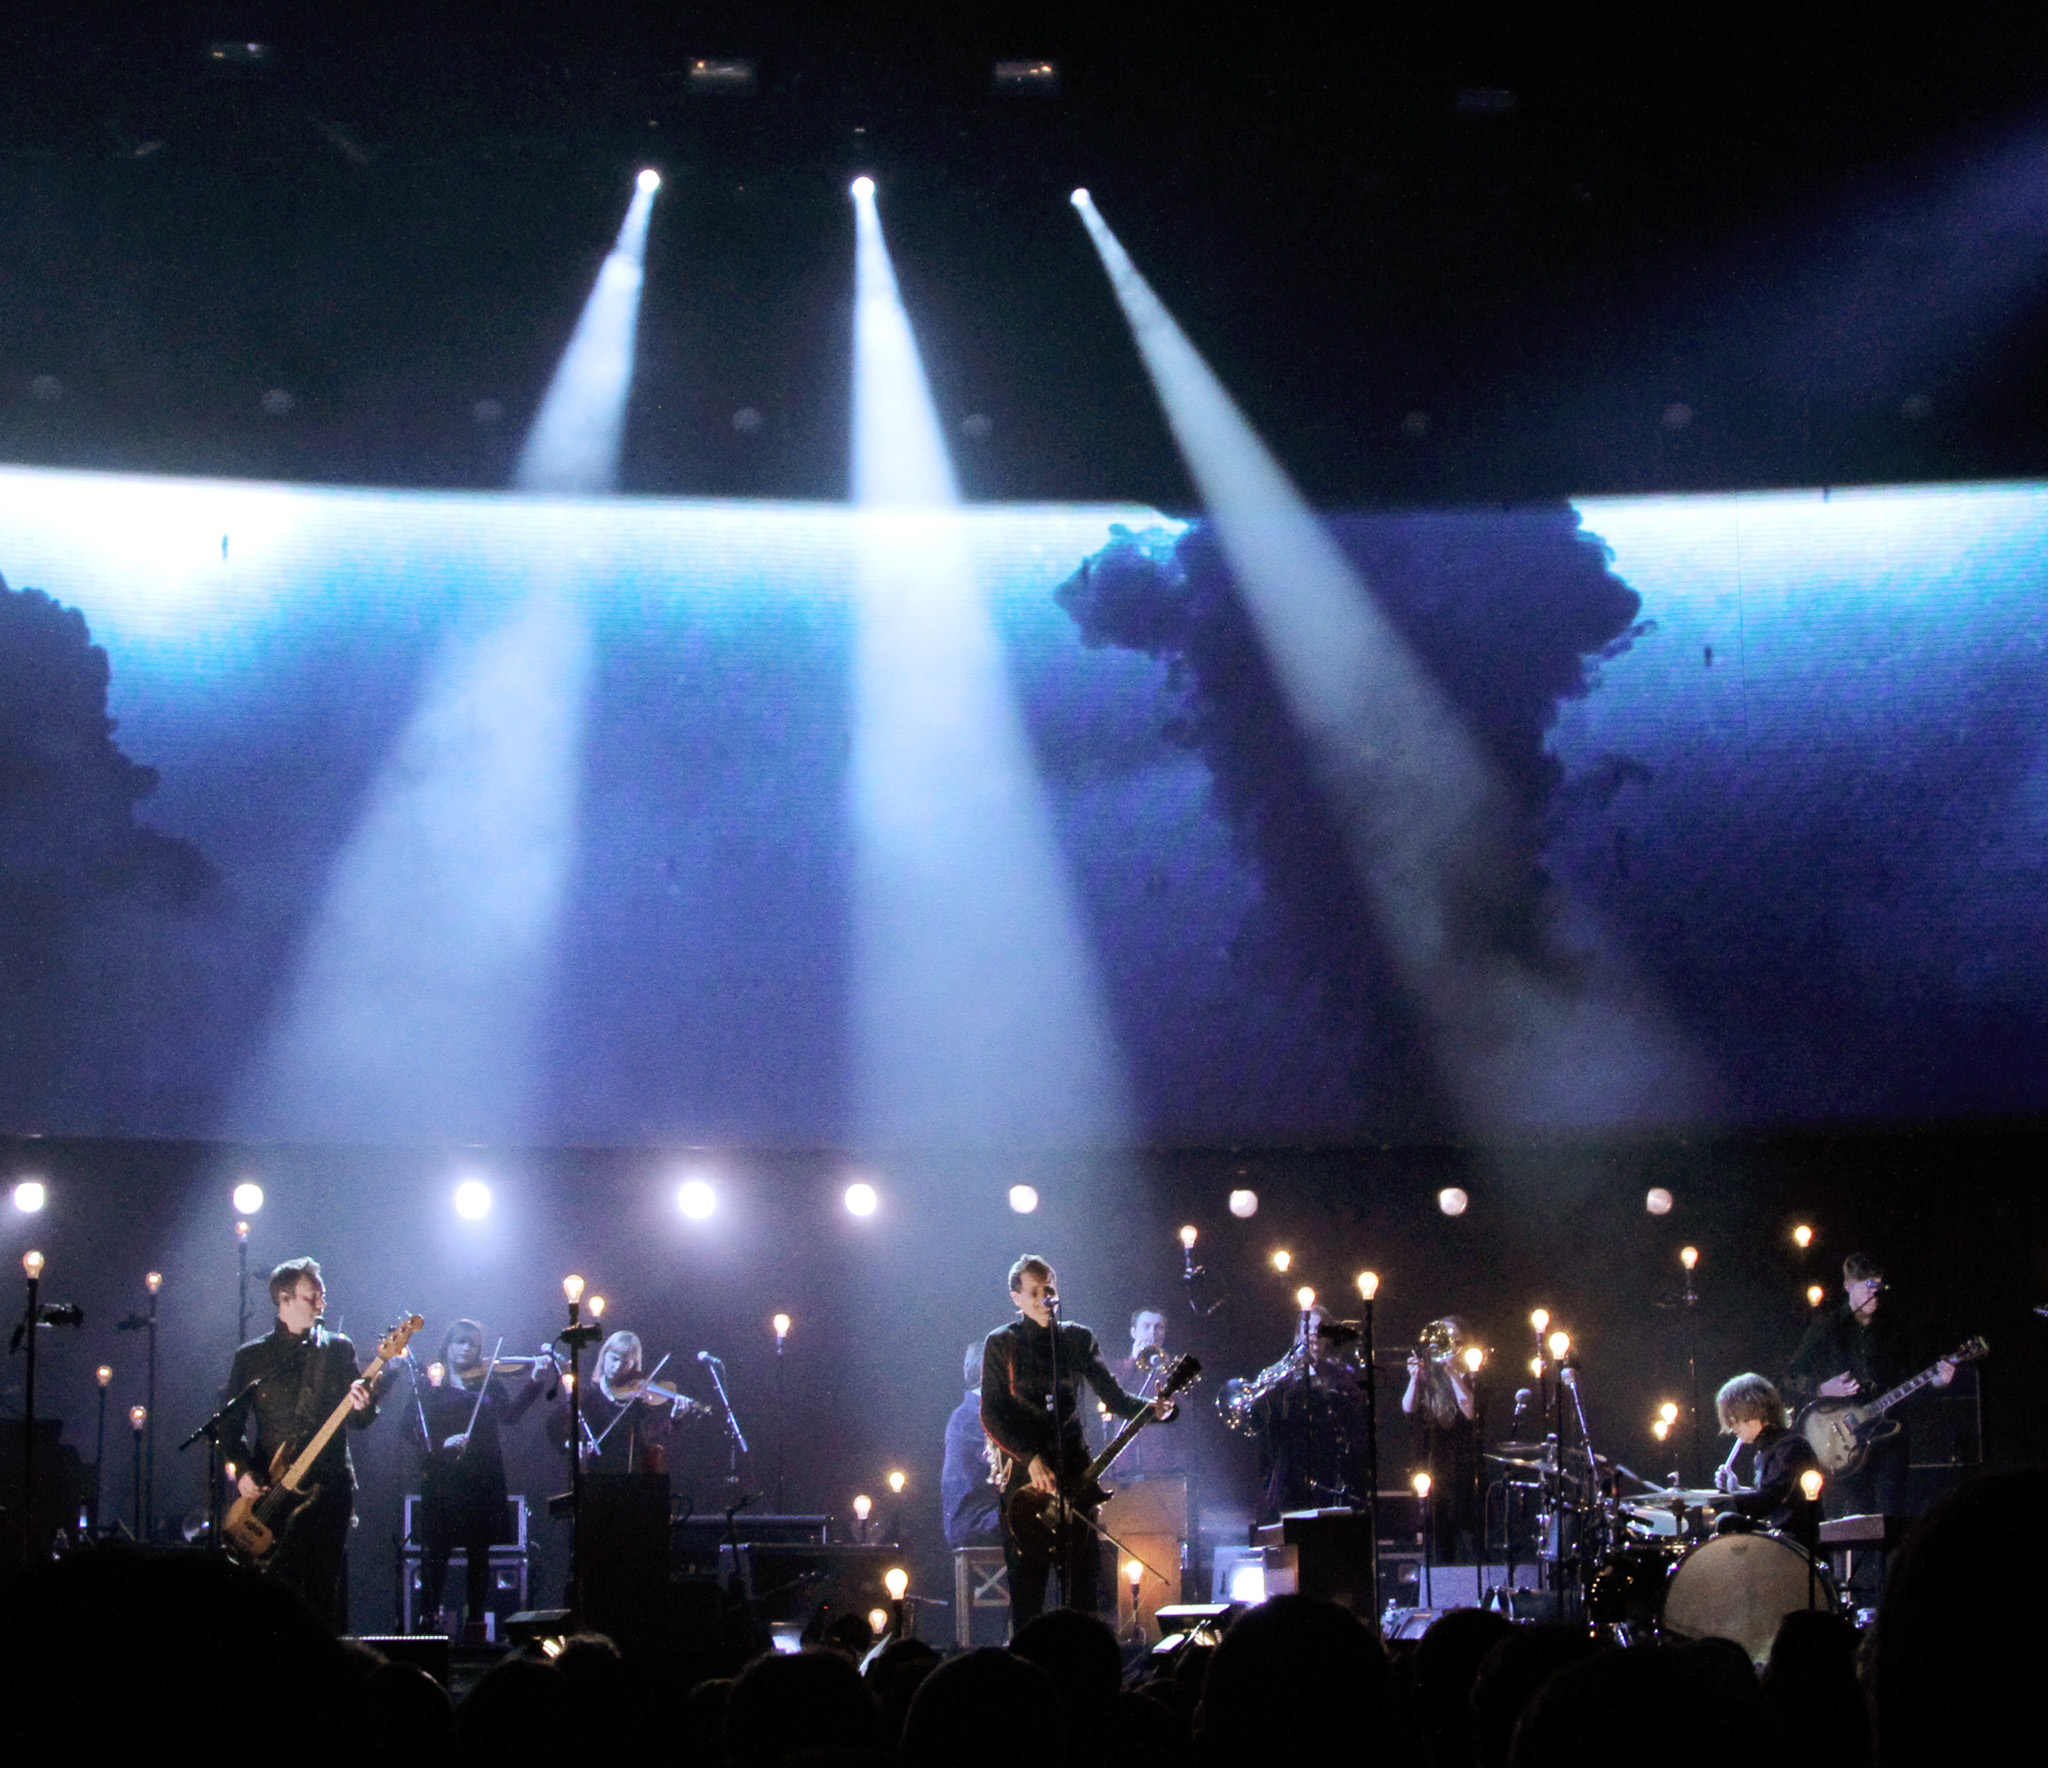 File:Sigur Ros at Madison Square Garden jpg - Wikipedia